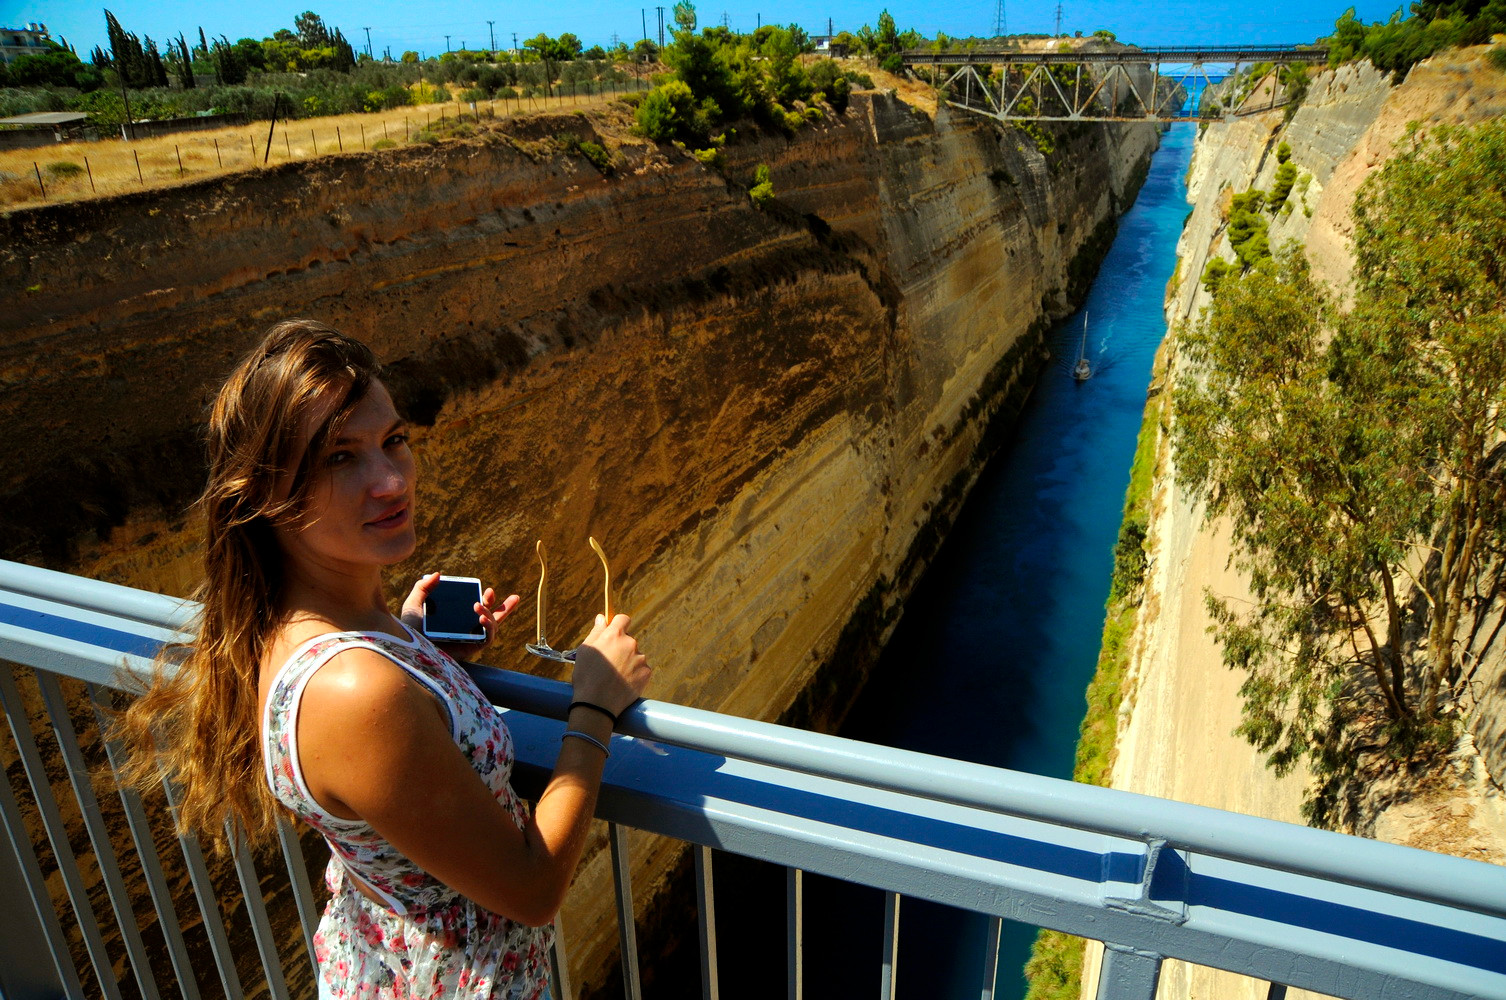 ANCIENT CORINTH - CANAL